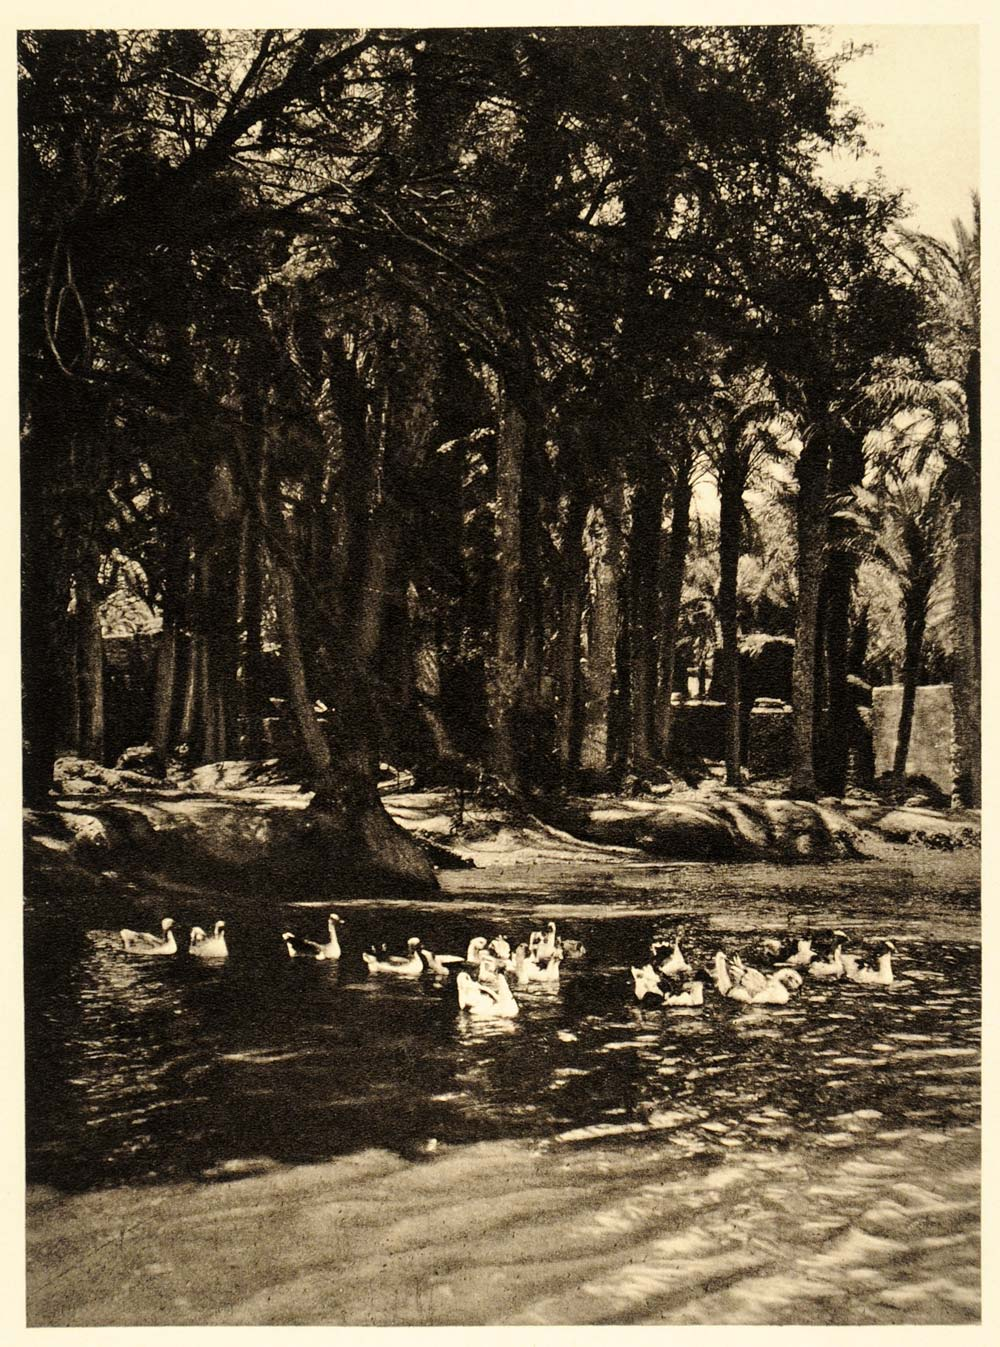 1929 Faiyum Fayum Oasis Egypt Palm Trees Pond Ducks - ORIGINAL PHOTOGRAVURE EG1